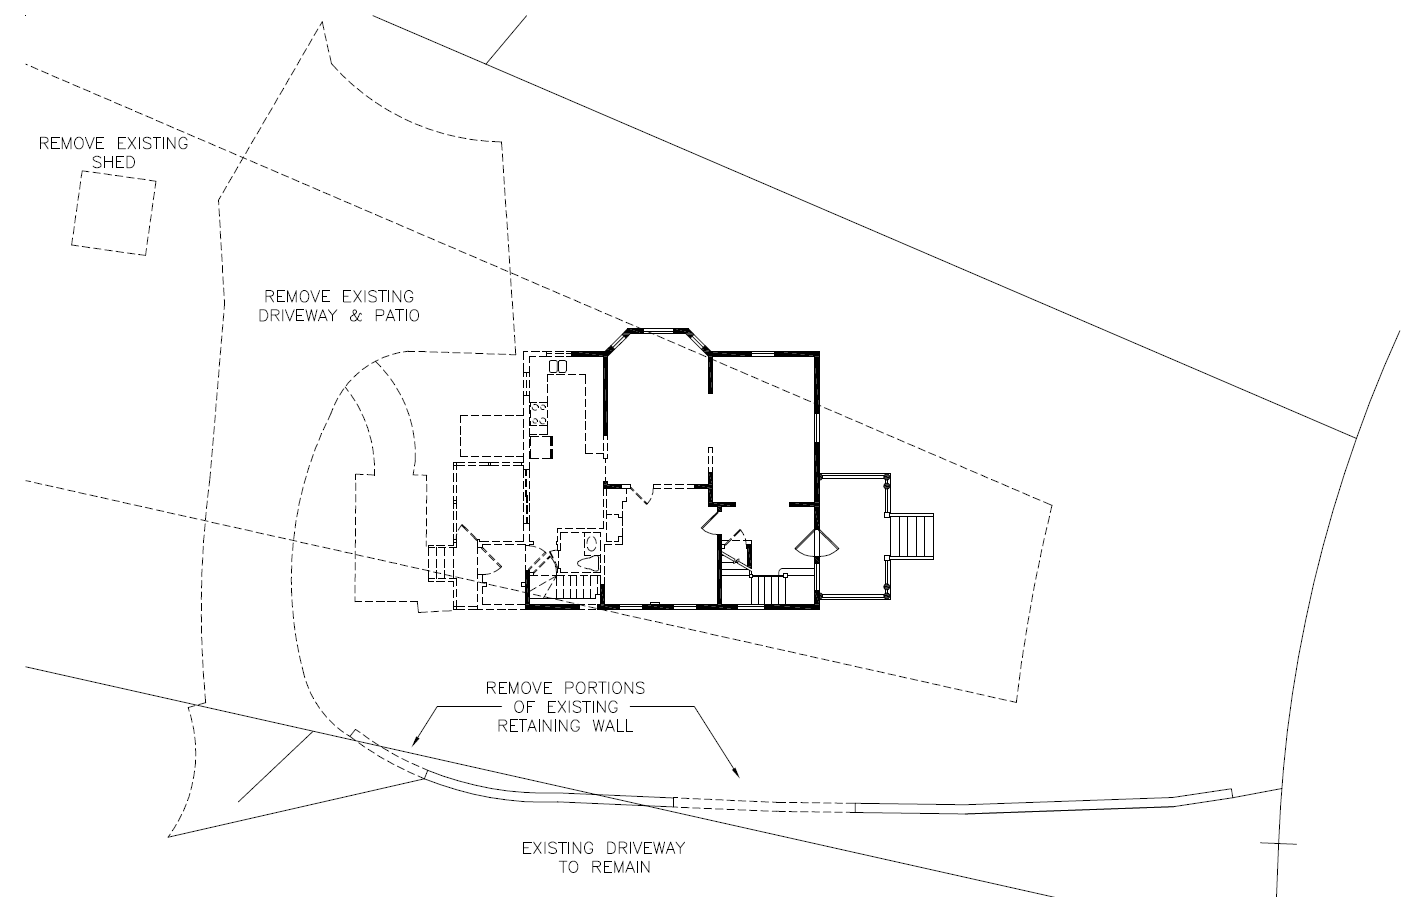 Demolition site plan